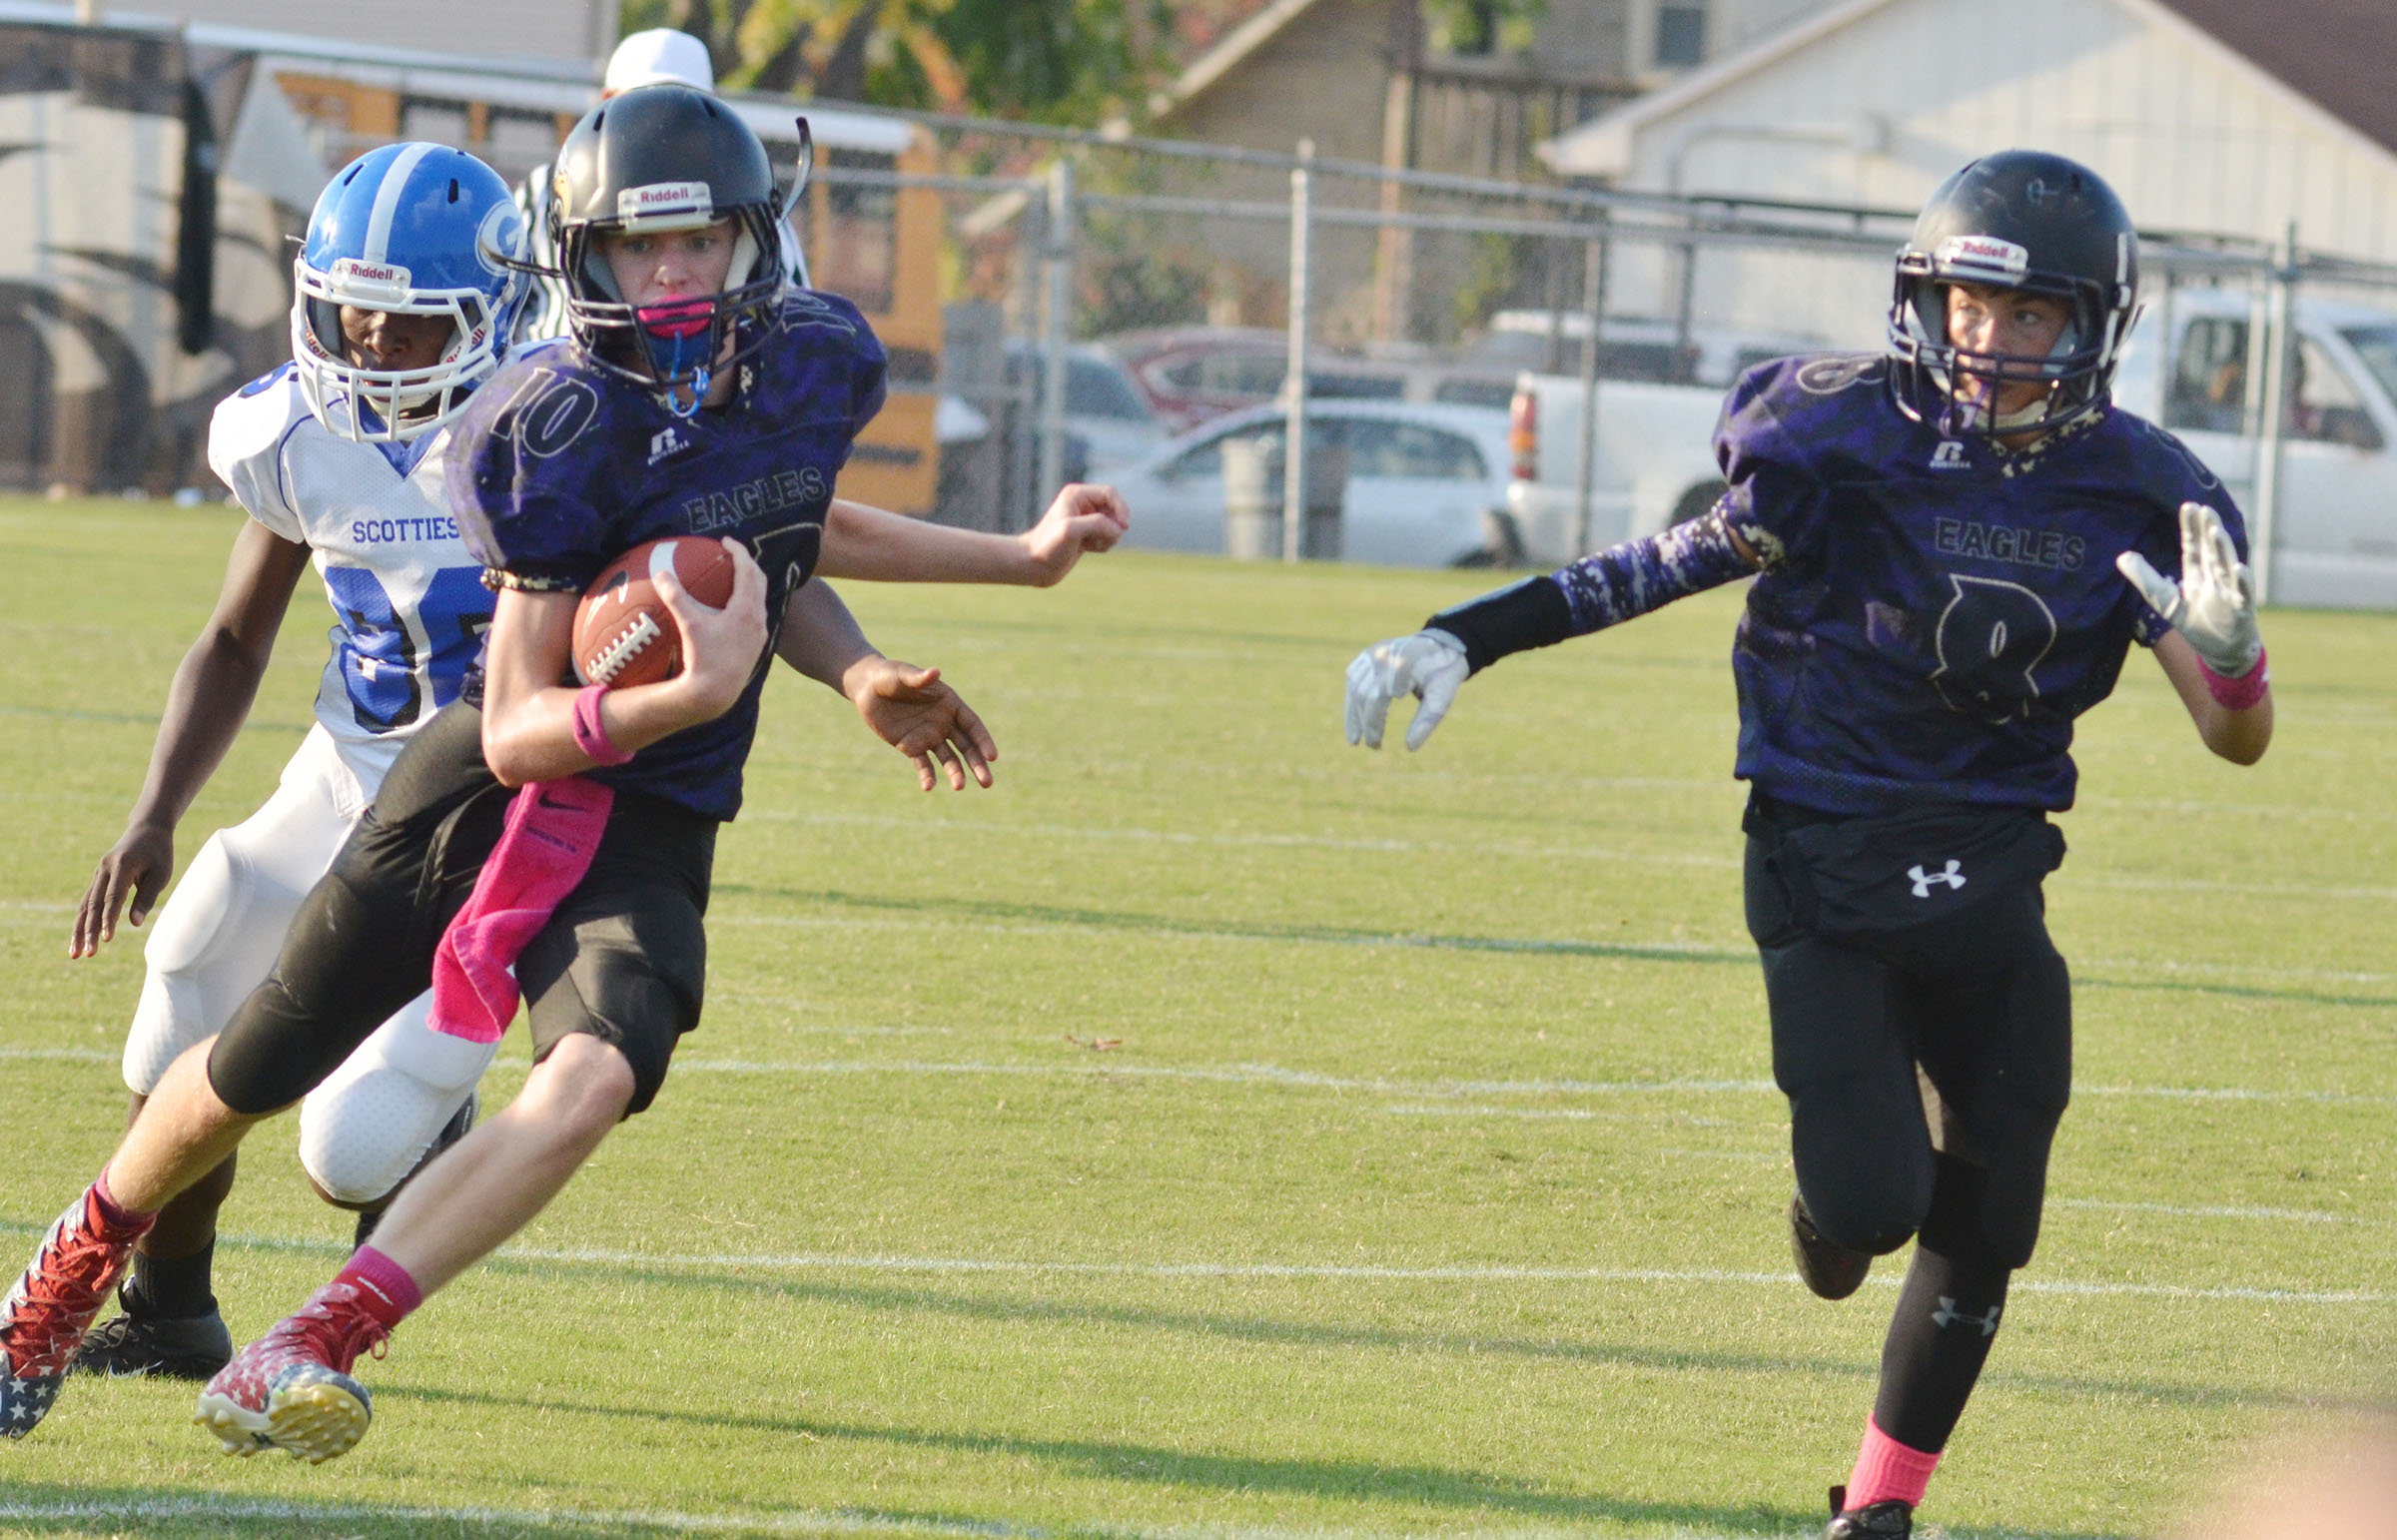 CMS eighth-grader Arren Hash runs the ball as sixth-grader Gavin Oliver gets ready to block.